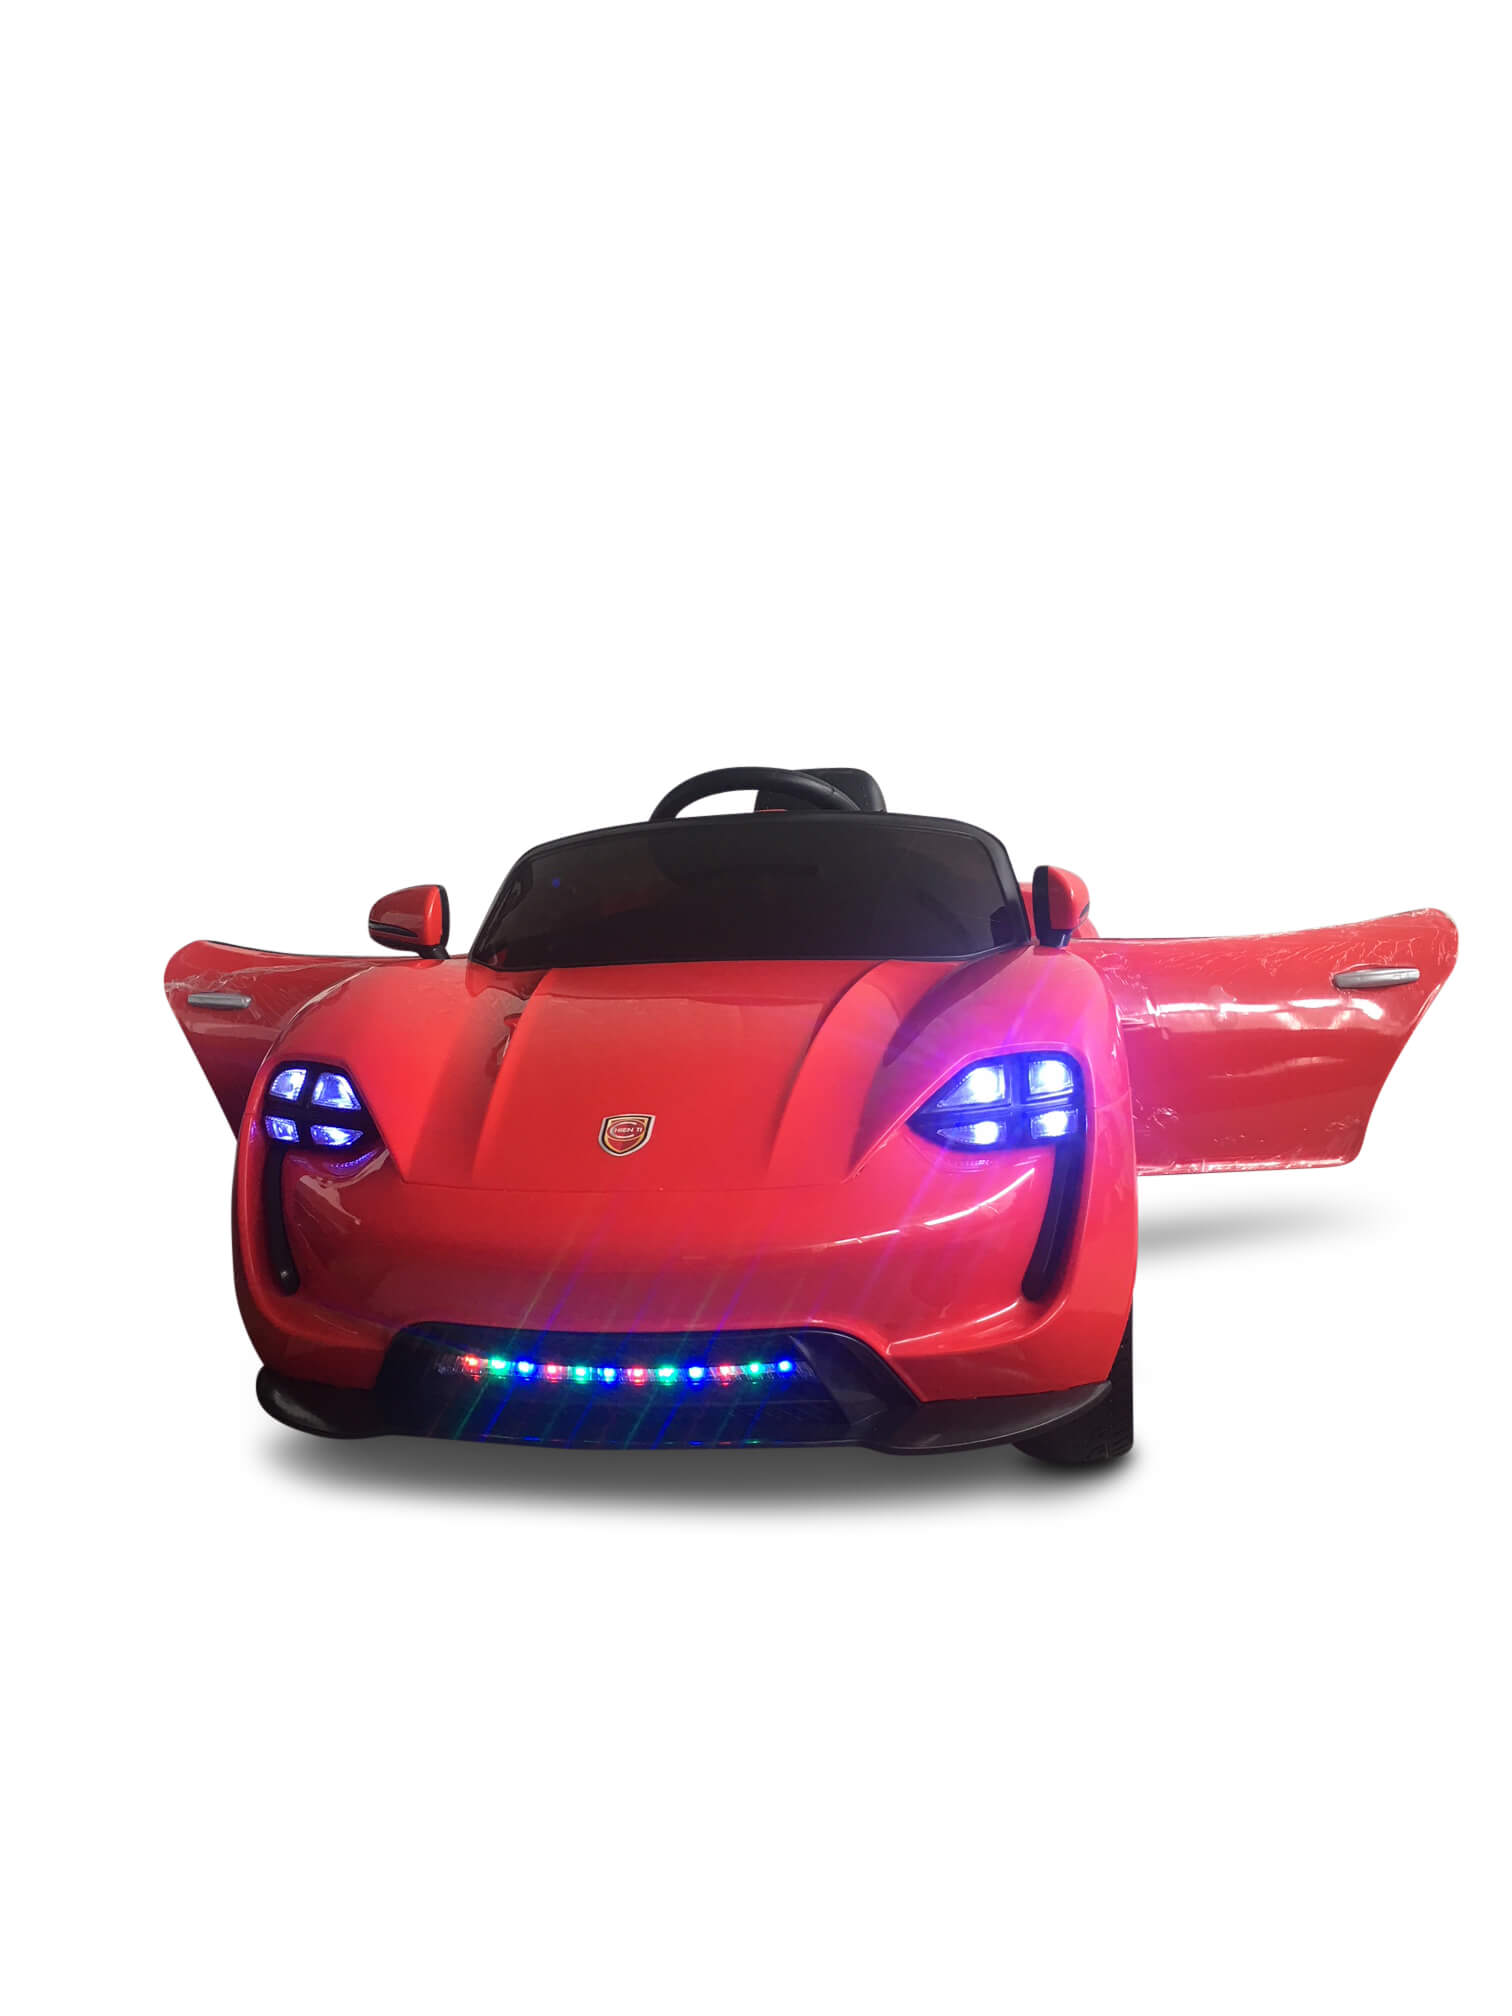 sport eva edition 12v kids ride on car with rc music lights red